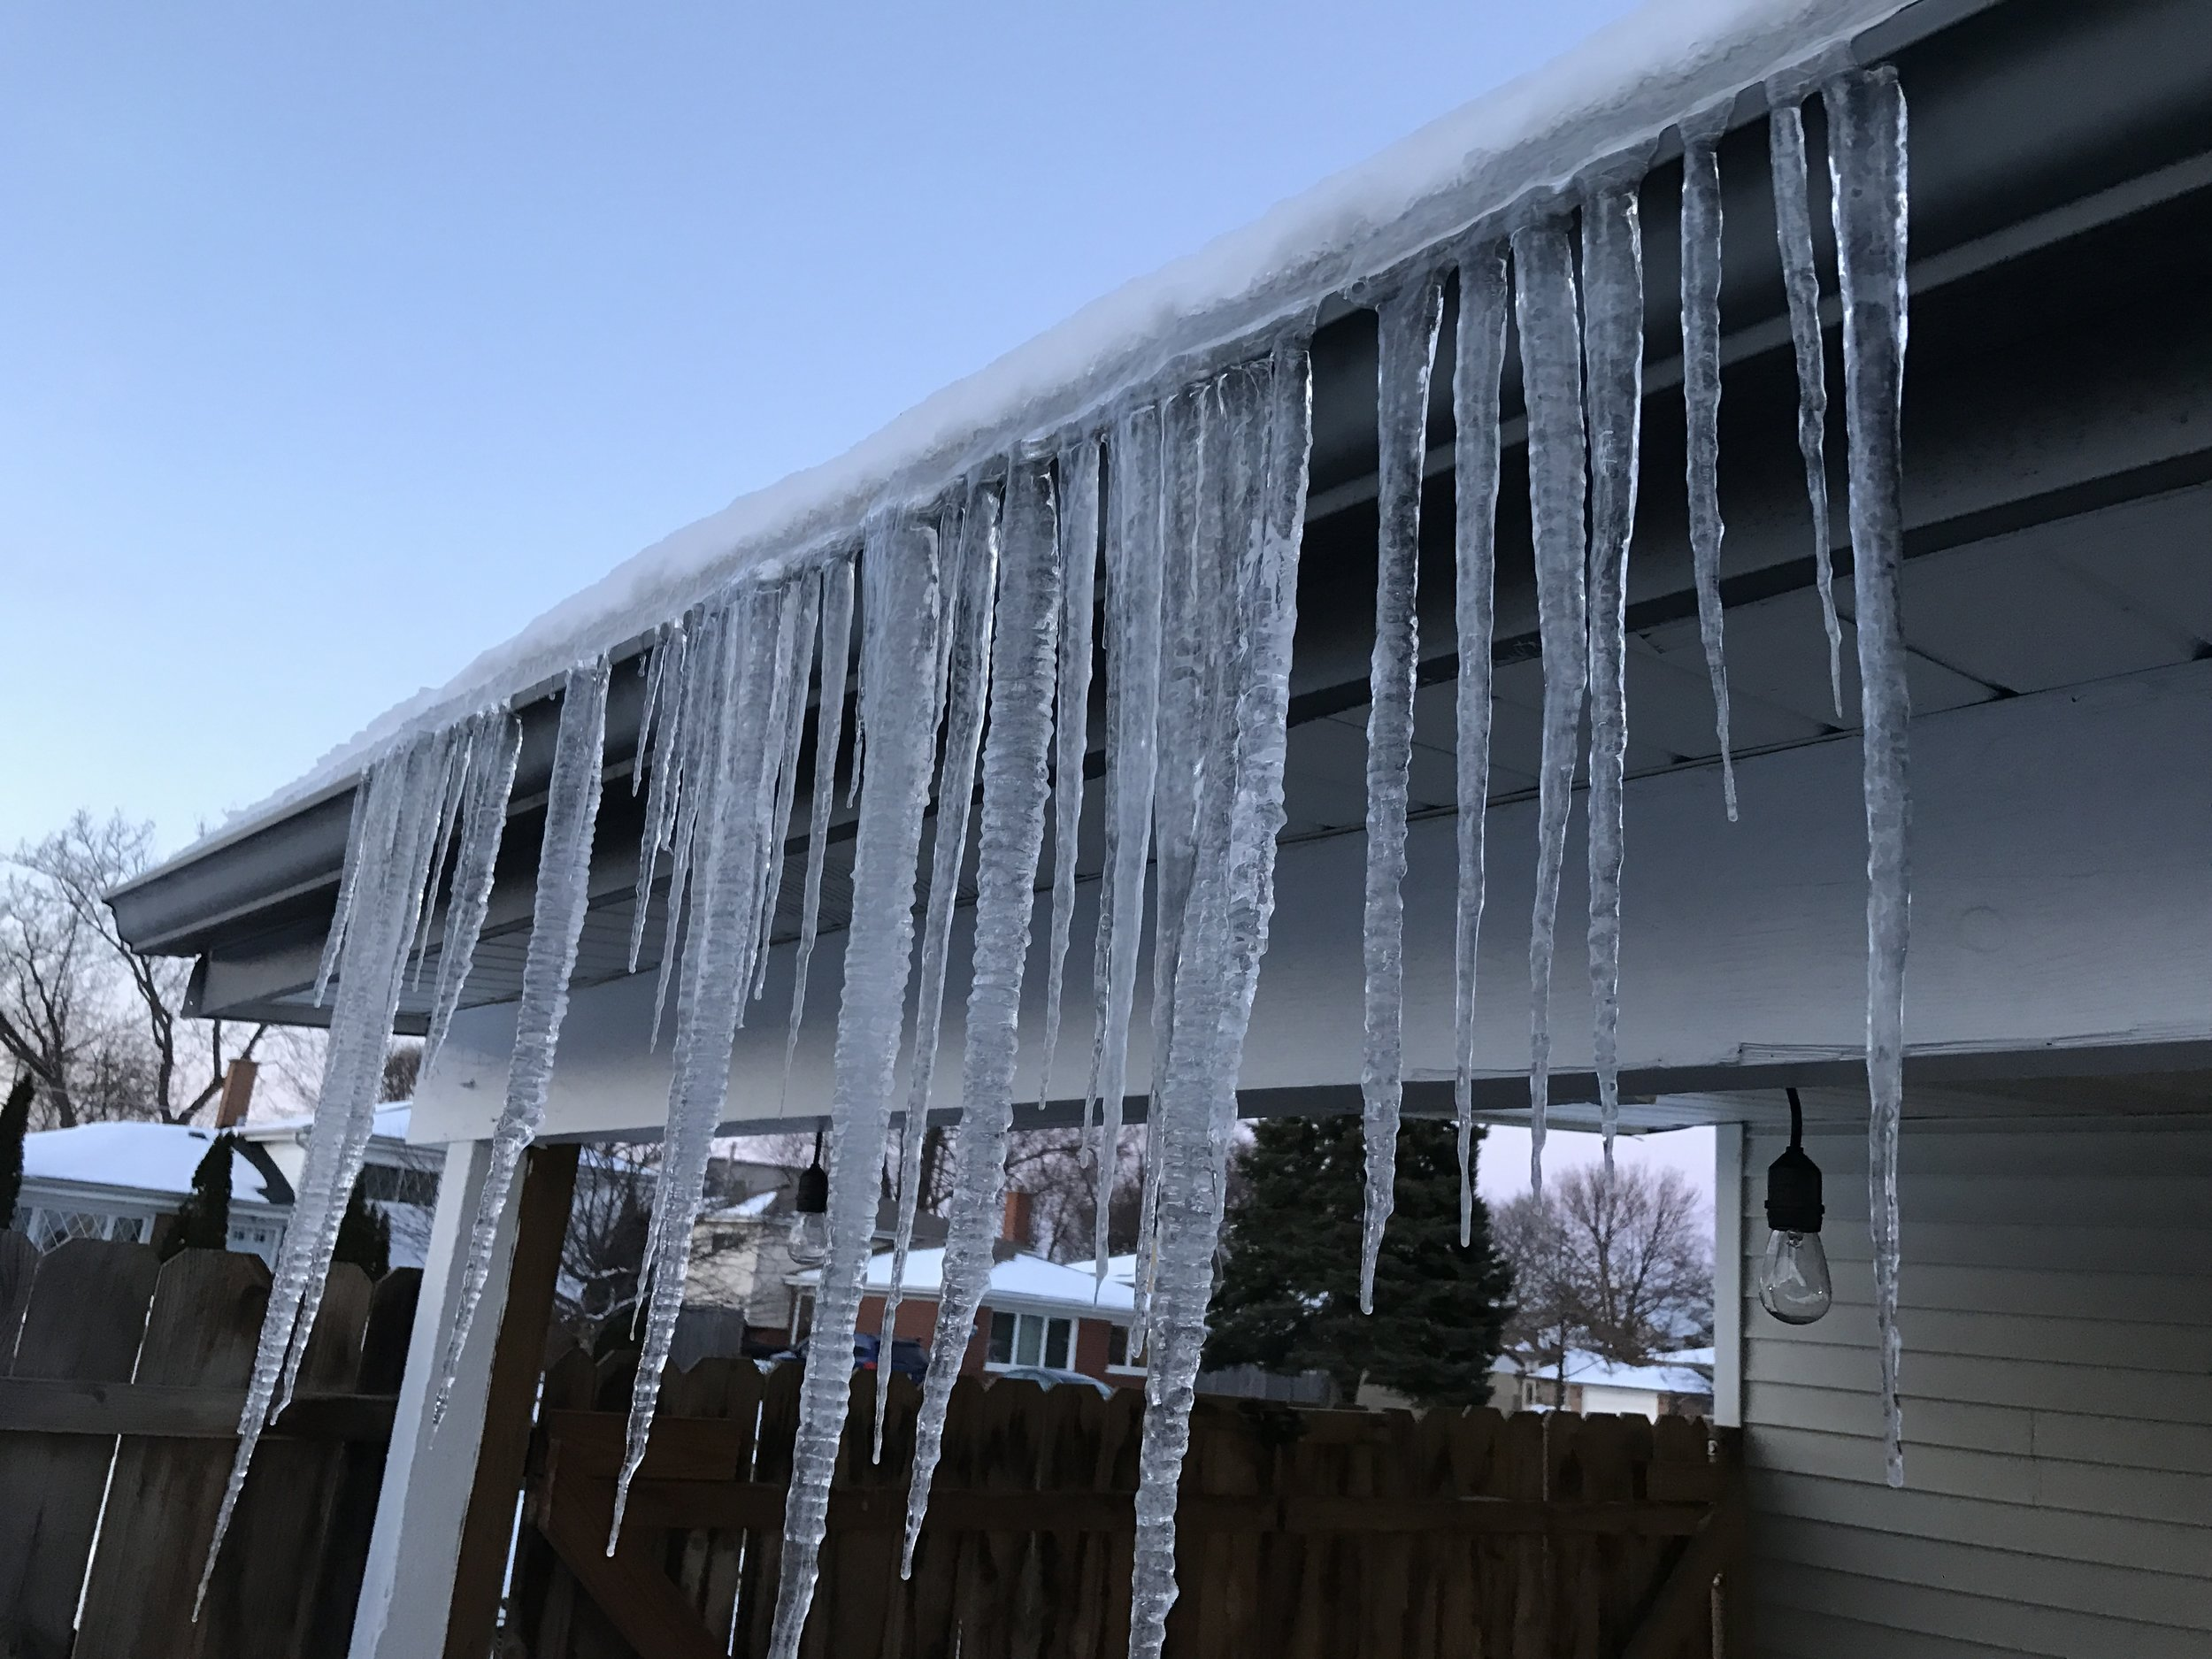 Photographed here is some Ice Damming that has formed on a home in Addison, IL